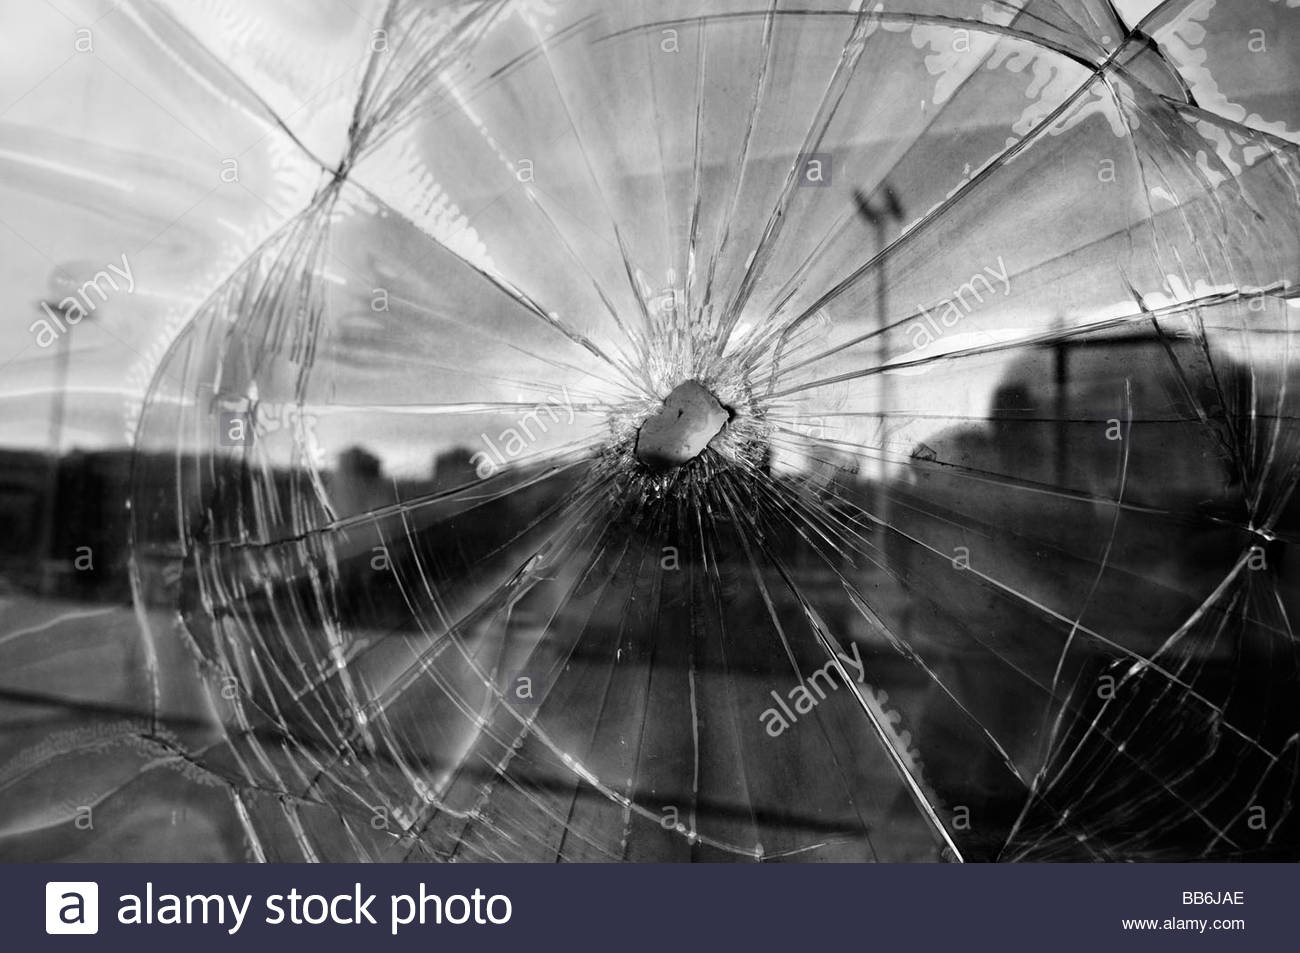 Exterior window shows shrapnel damage from the 1992-95 war in the town of Tuzla in Bosnia Herzegovina - Stock Image